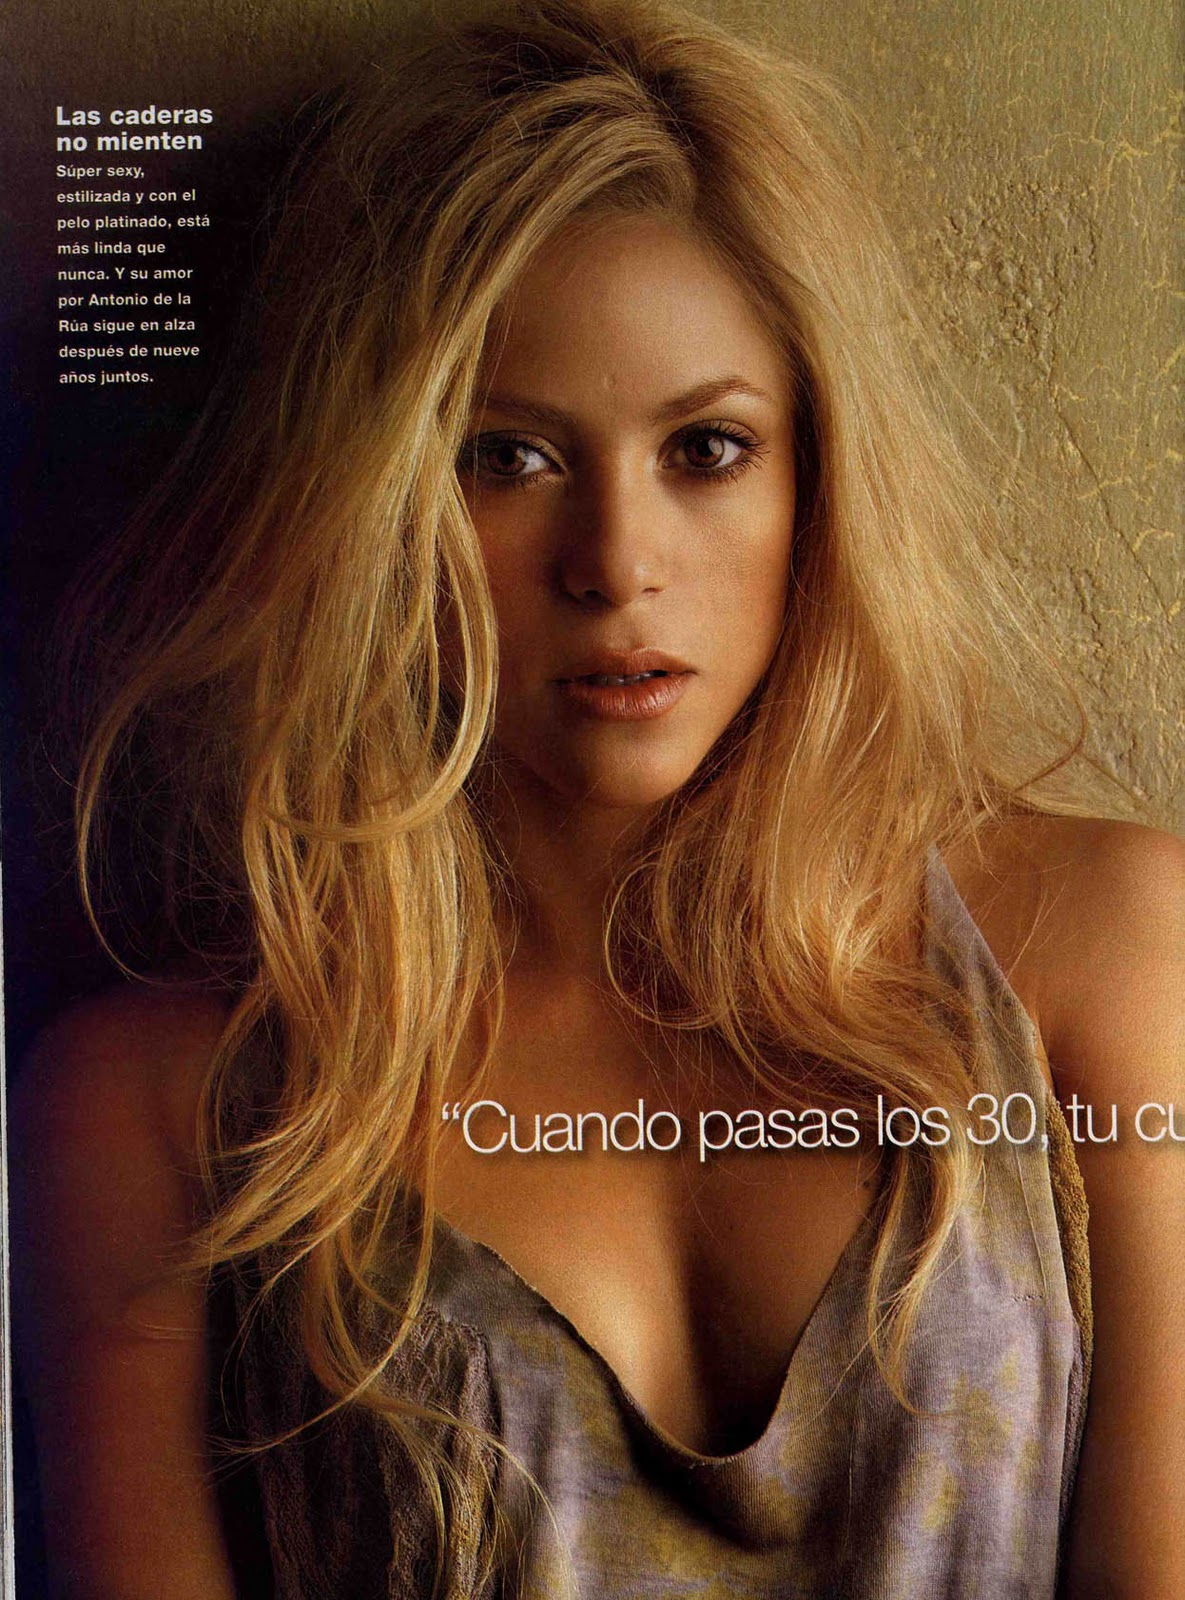 idlefans: shakira ? Sexy Celebrity Photos / Pictures Galleries